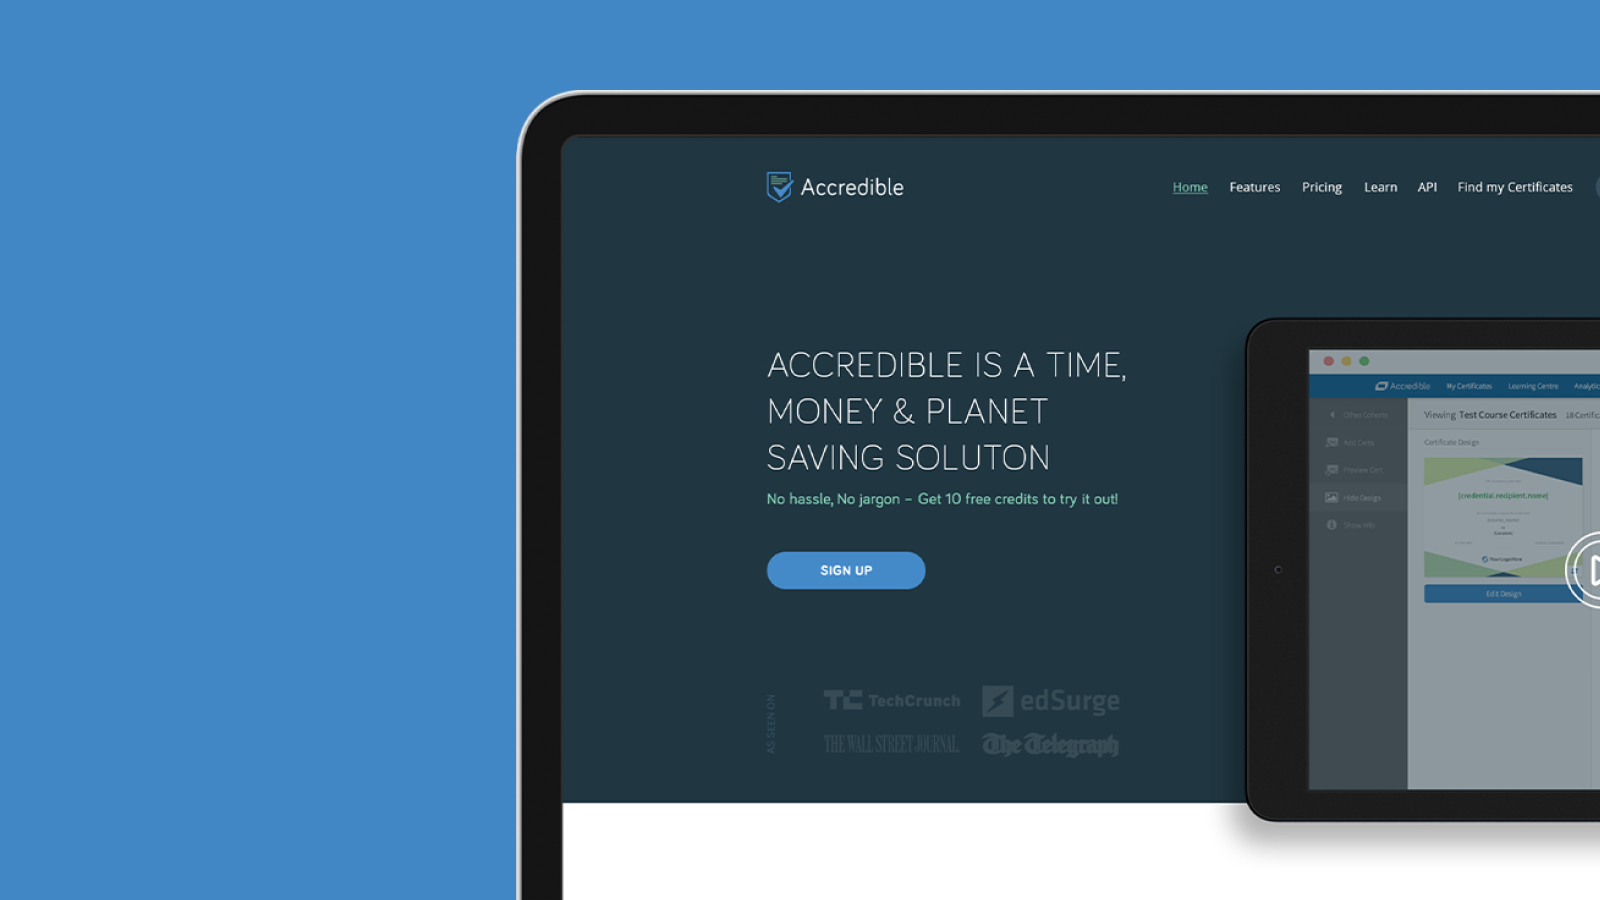 Accredible website design